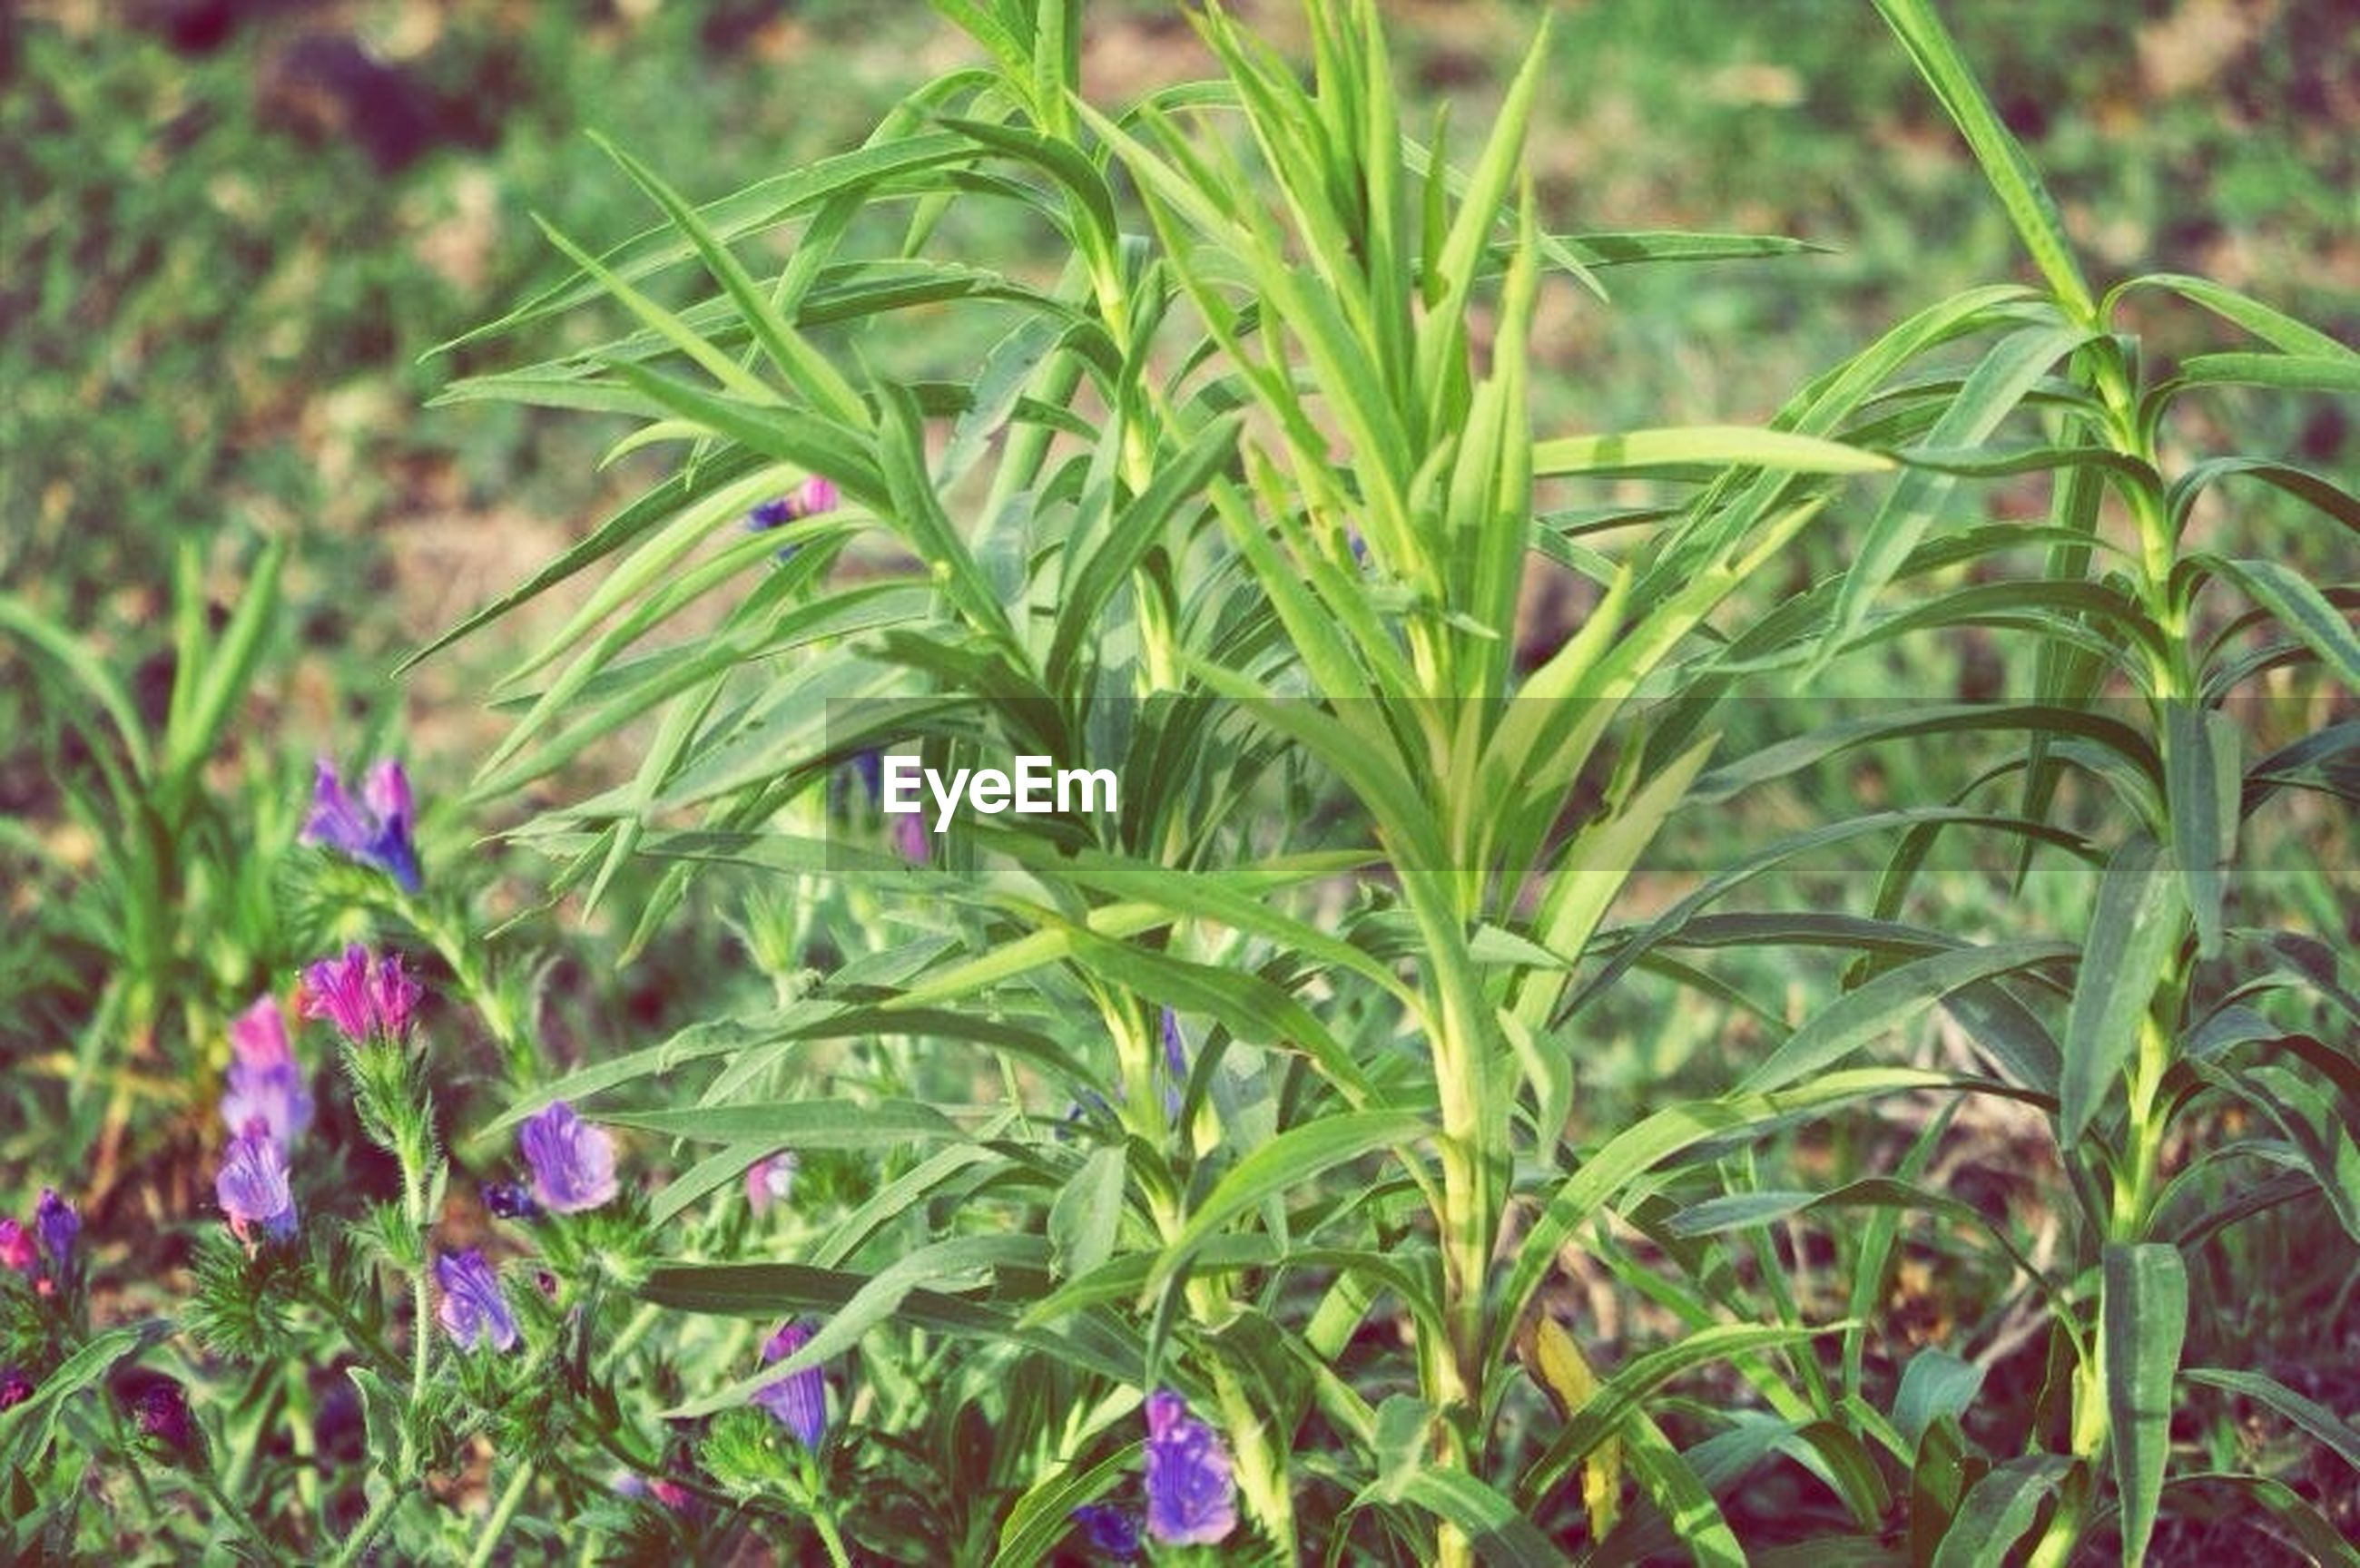 growth, freshness, plant, green color, flower, beauty in nature, nature, fragility, leaf, close-up, field, focus on foreground, growing, grass, day, outdoors, blooming, selective focus, green, no people